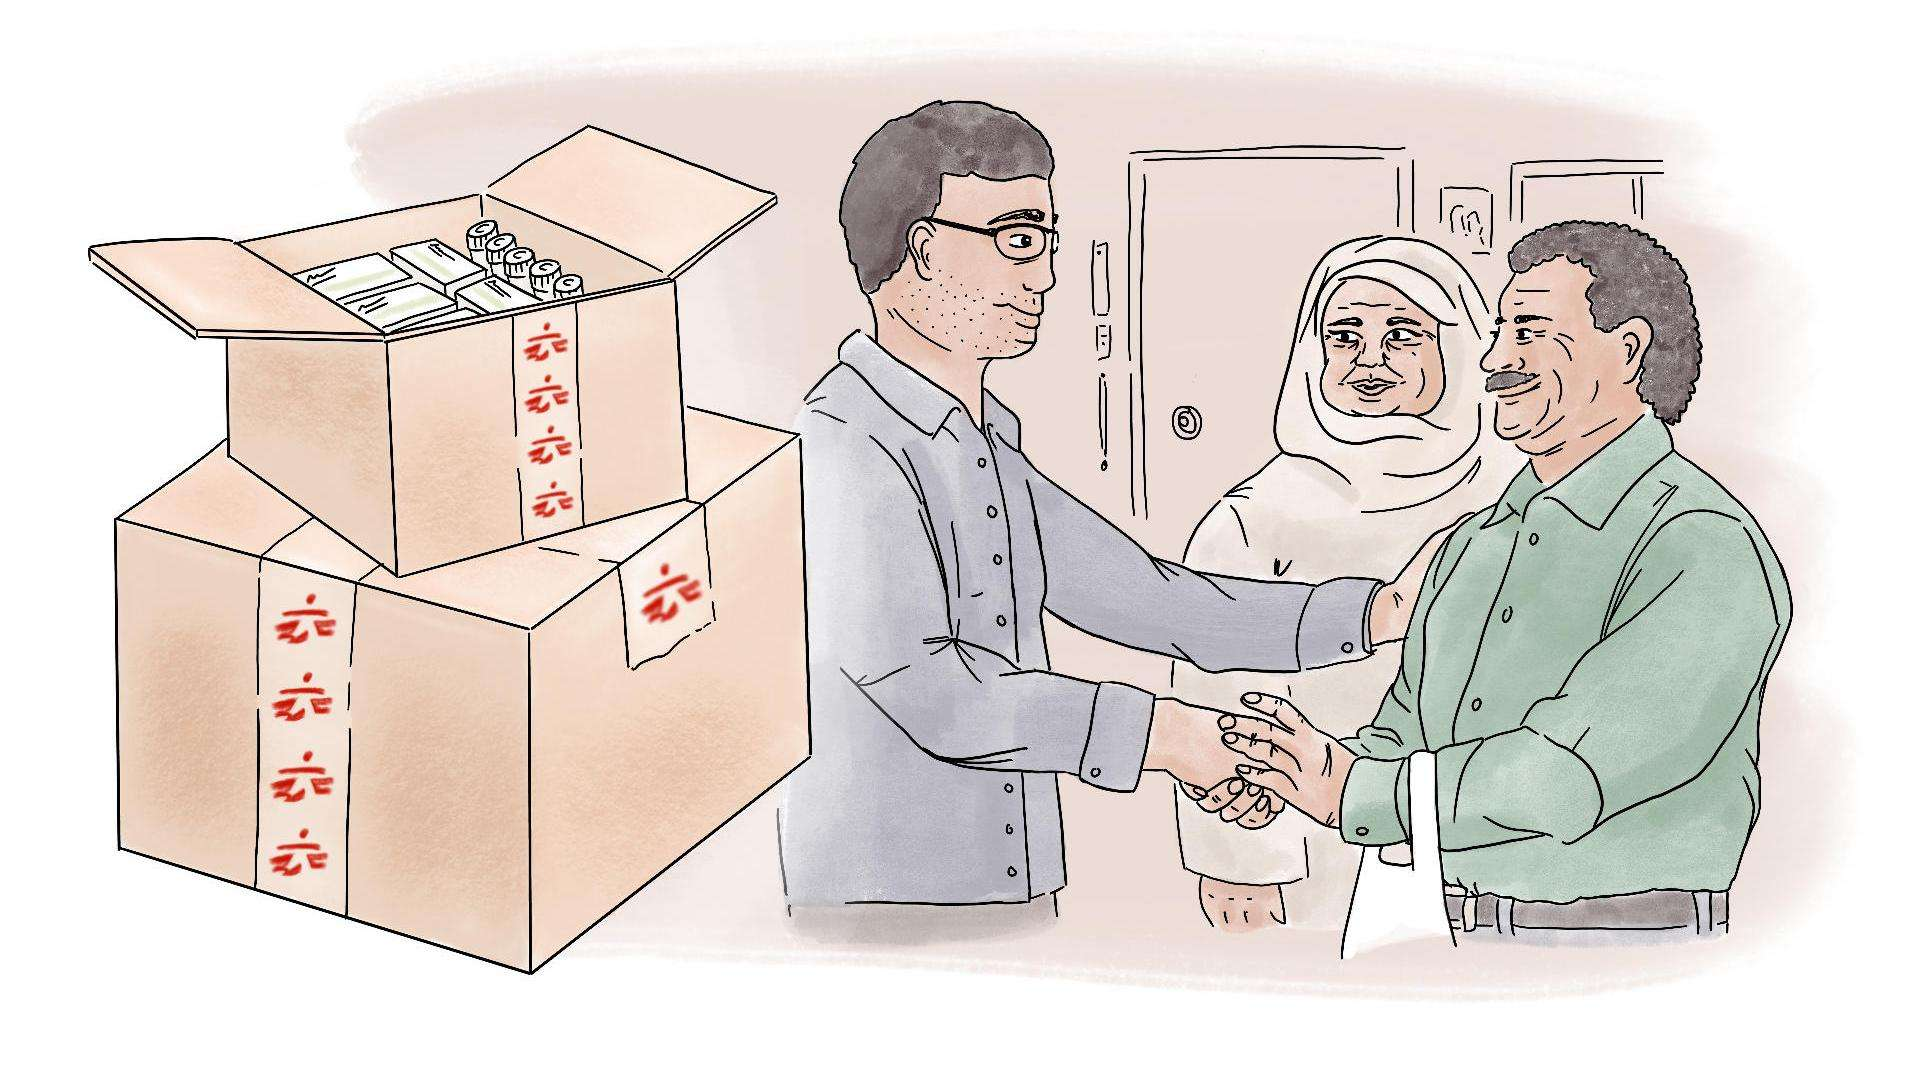 MSF provides life-saving medicine and treatment for kidney transplant patients in Syria